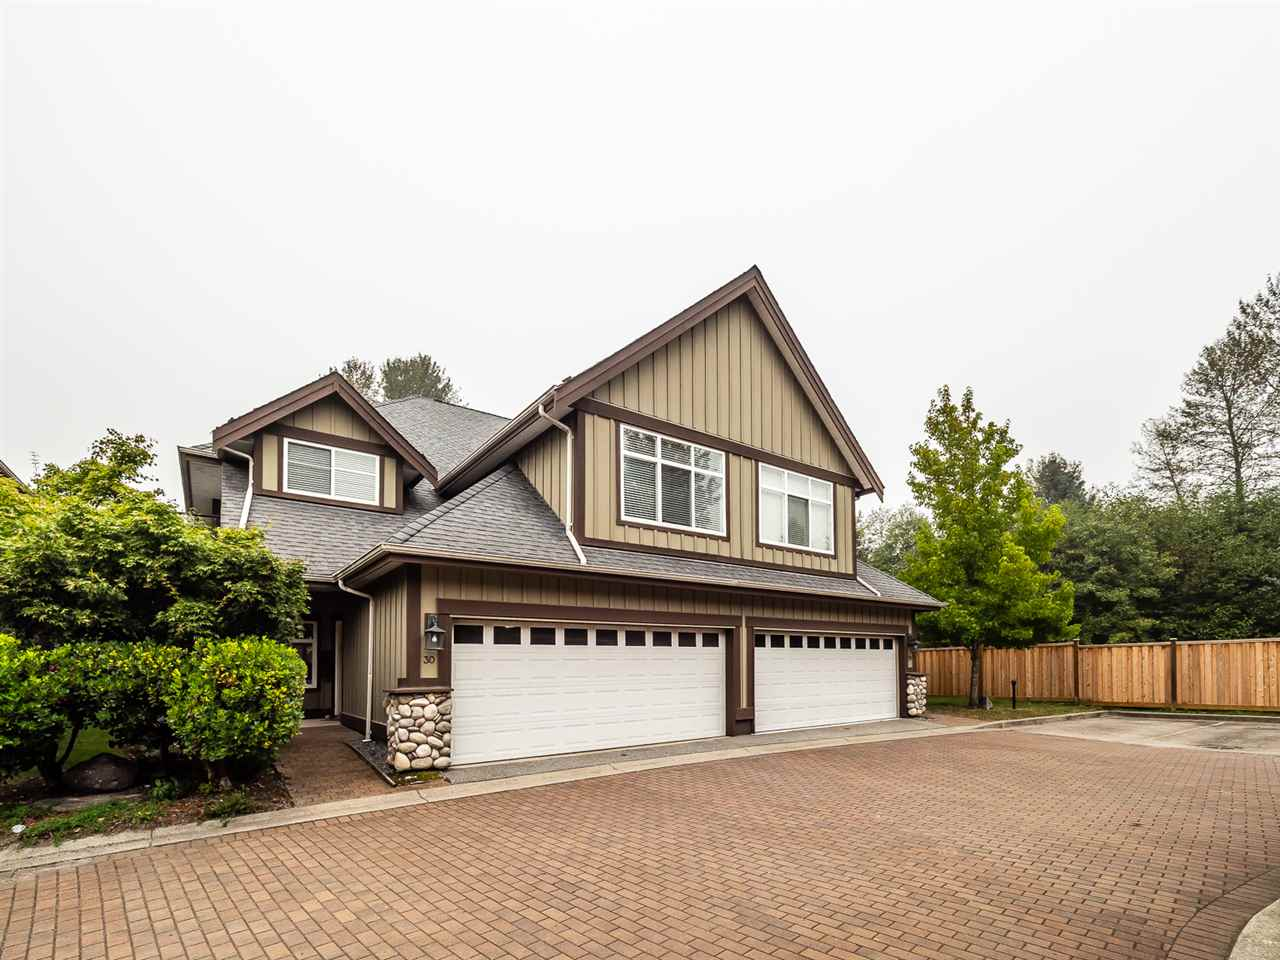 30 40750 TANTALUS ROAD, Squamish